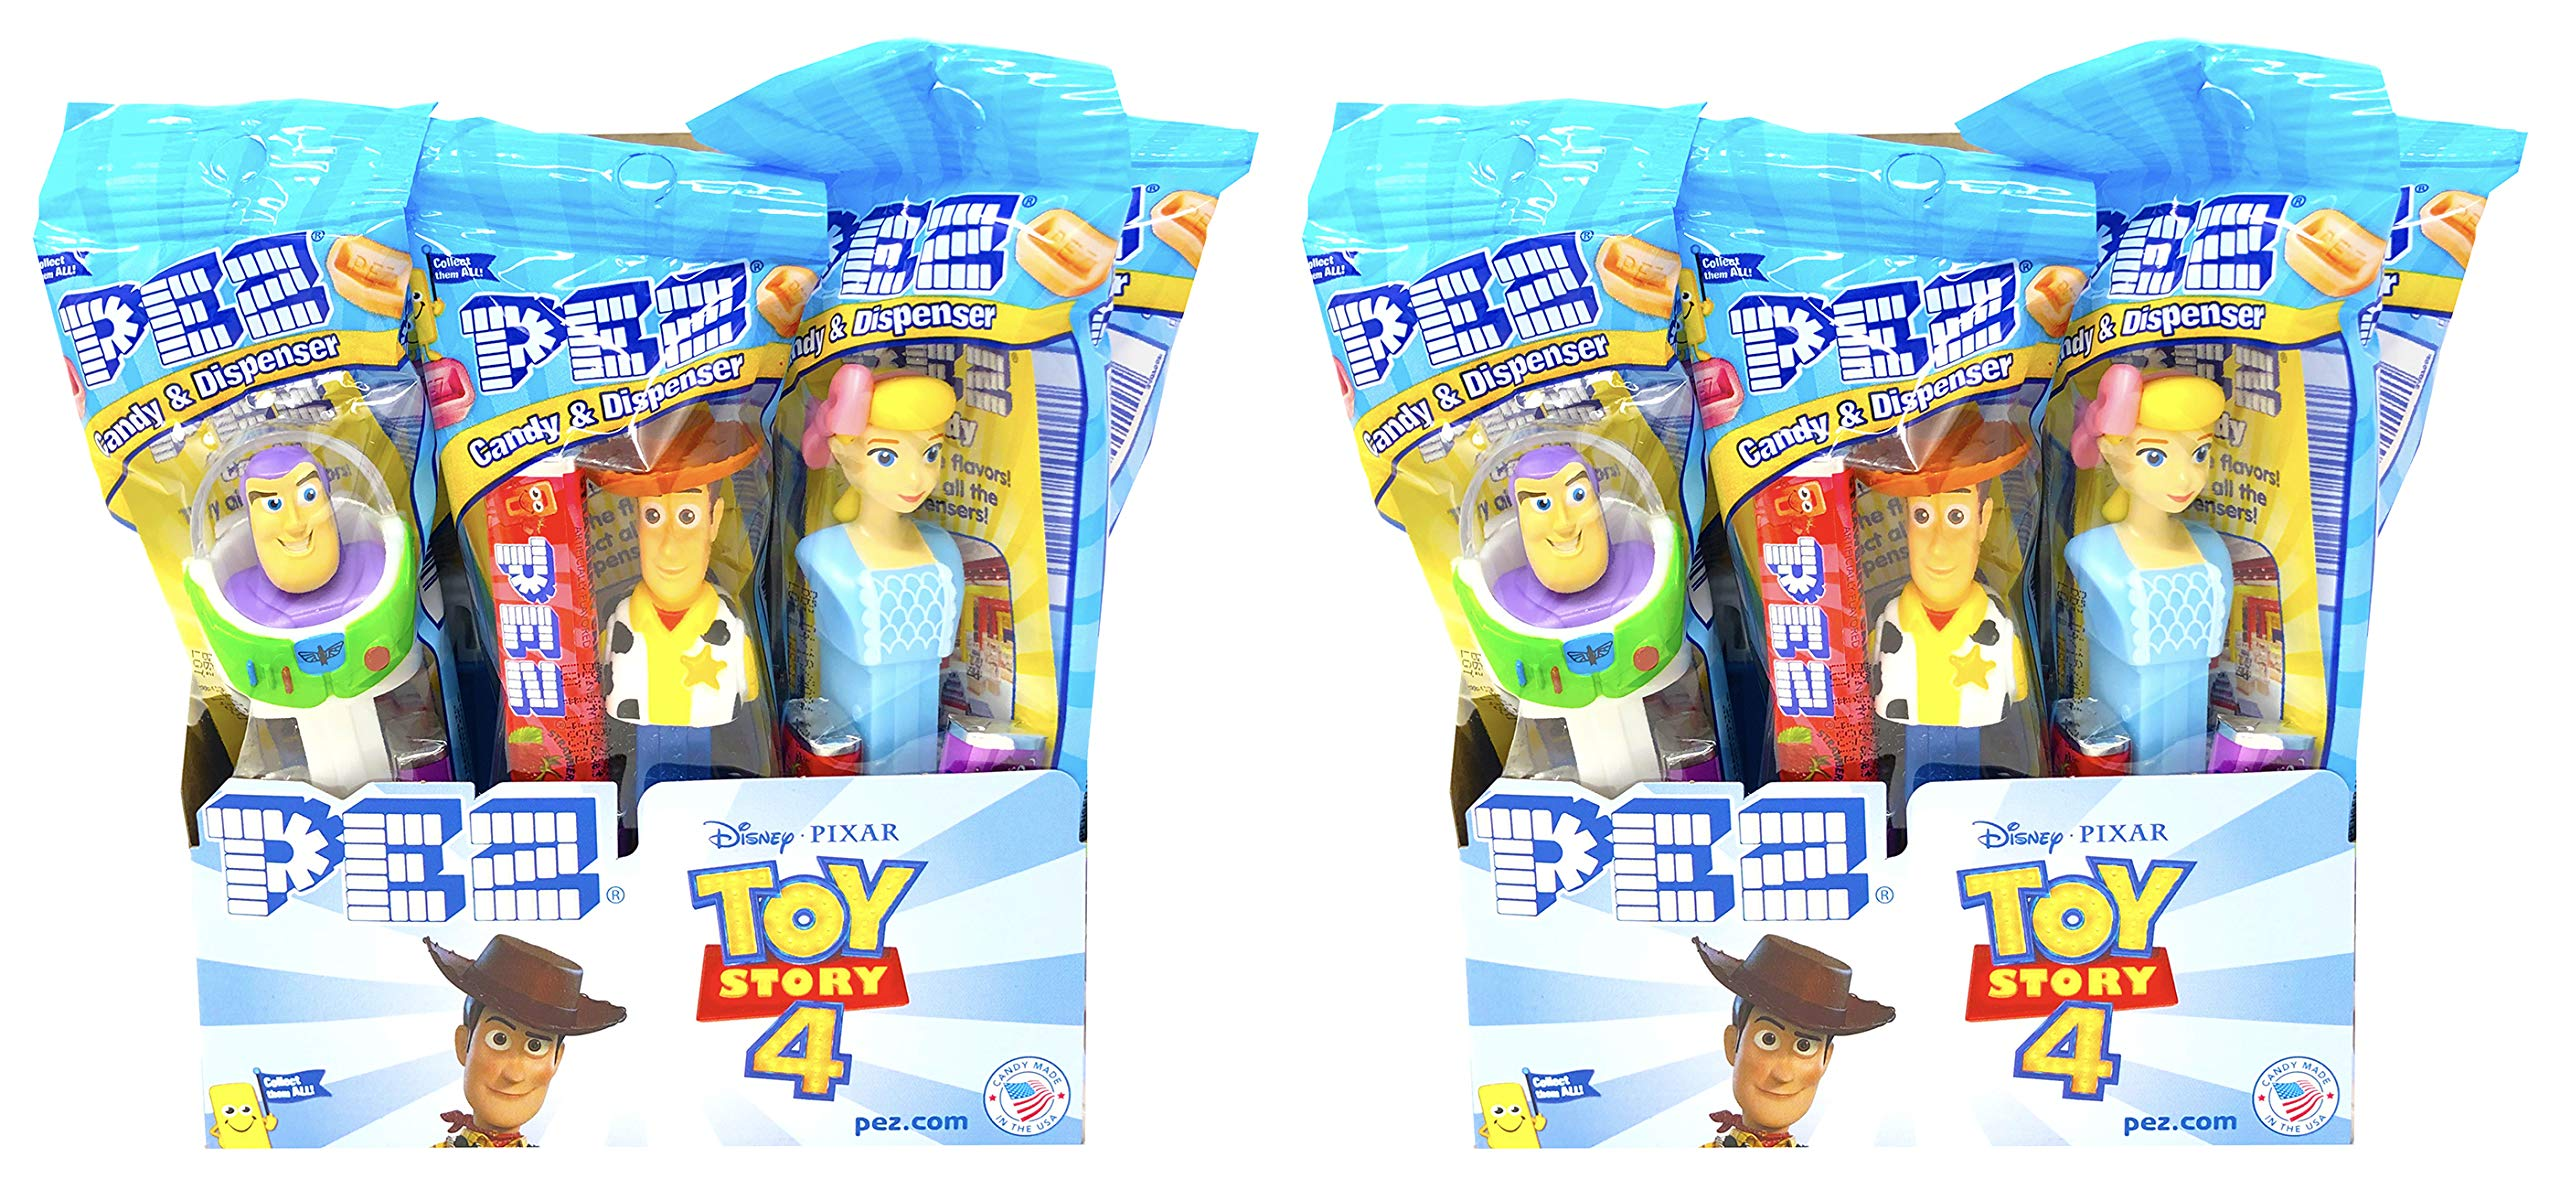 PEZ Toy Story 4 Candy Dispensers Individually Wrapped PEZ Candy and Dispensers with Tru Inertia Kazoo 24 Pack by Tru Inertia